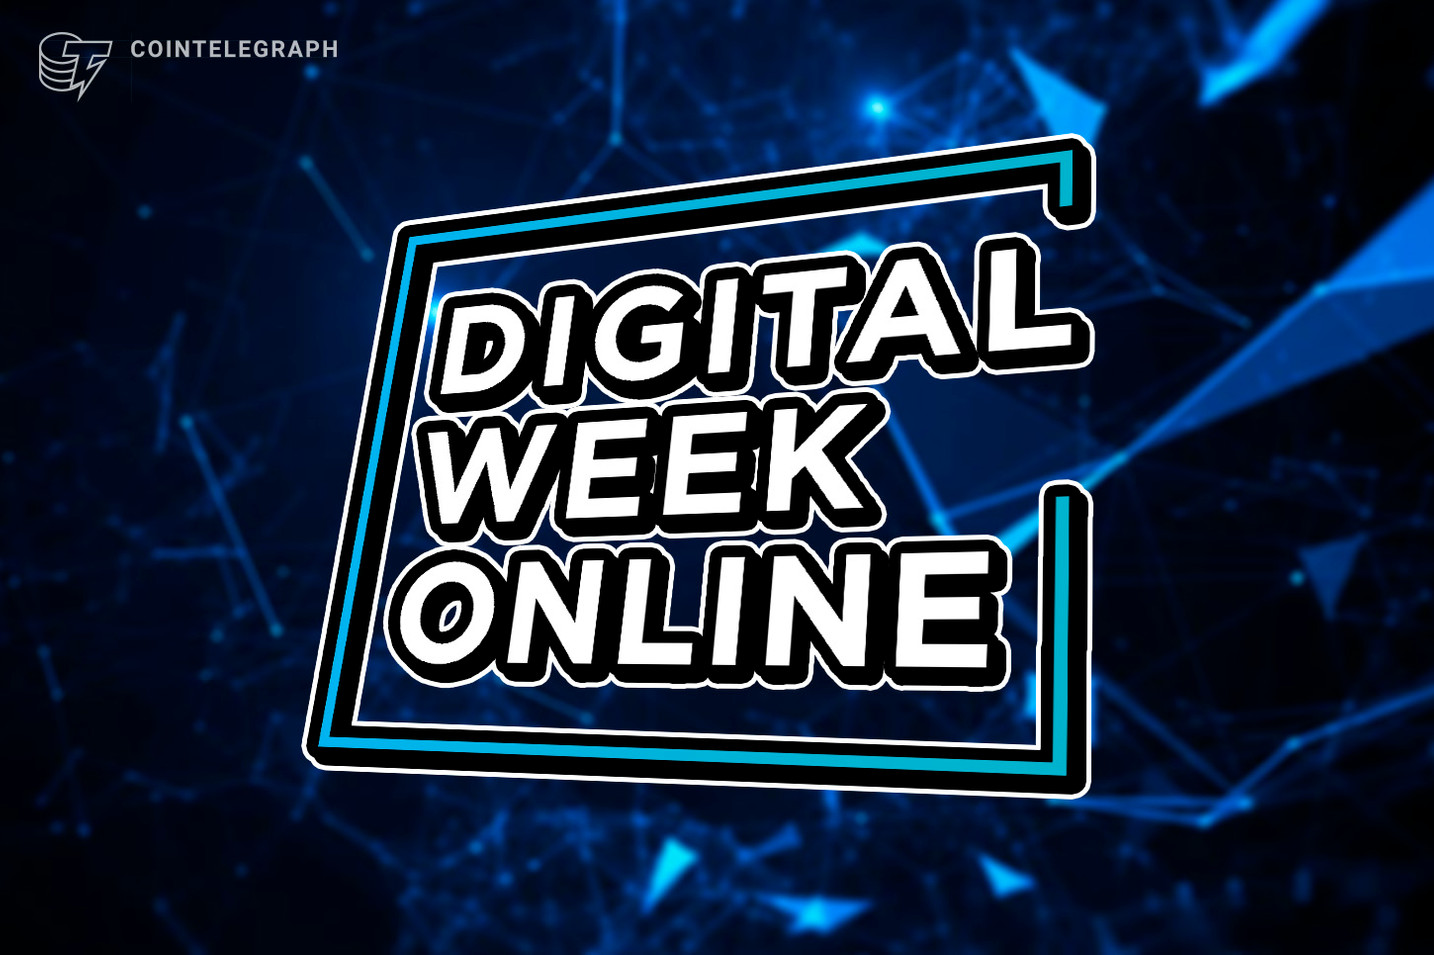 Digital Week Online 2021 – The biggest digital trends and must-haves for 2021